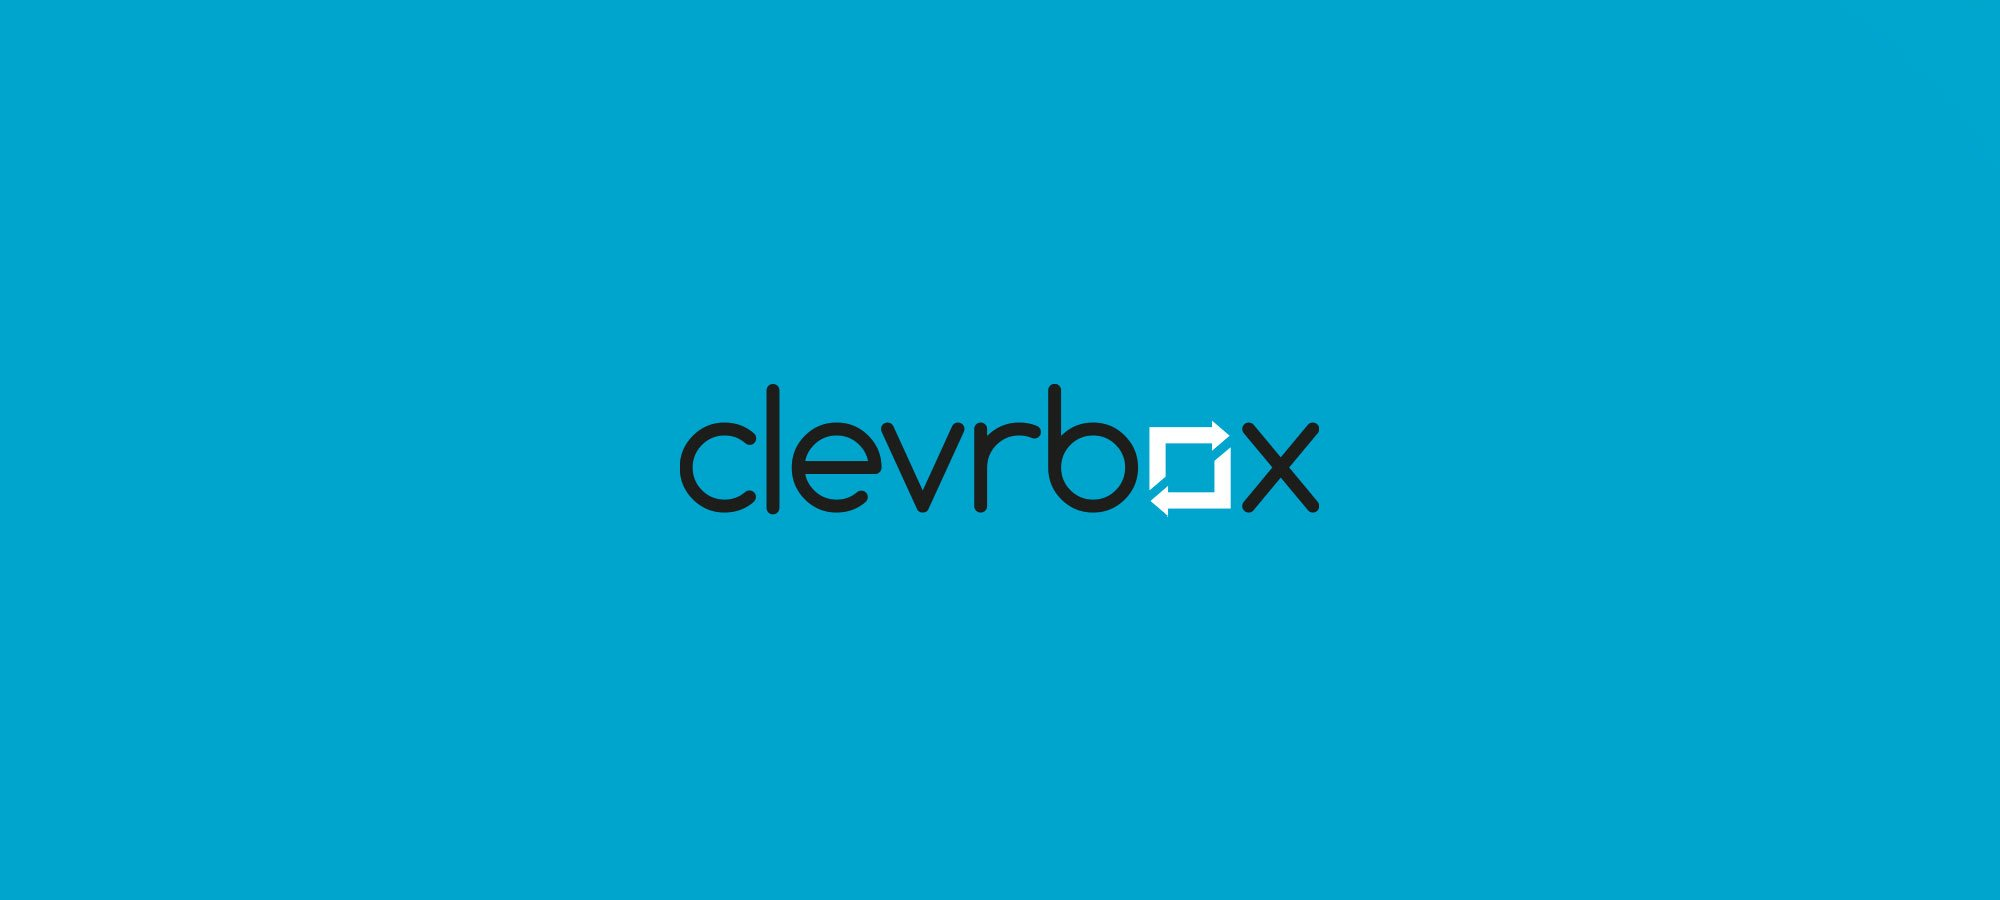 Clevrbox logo design